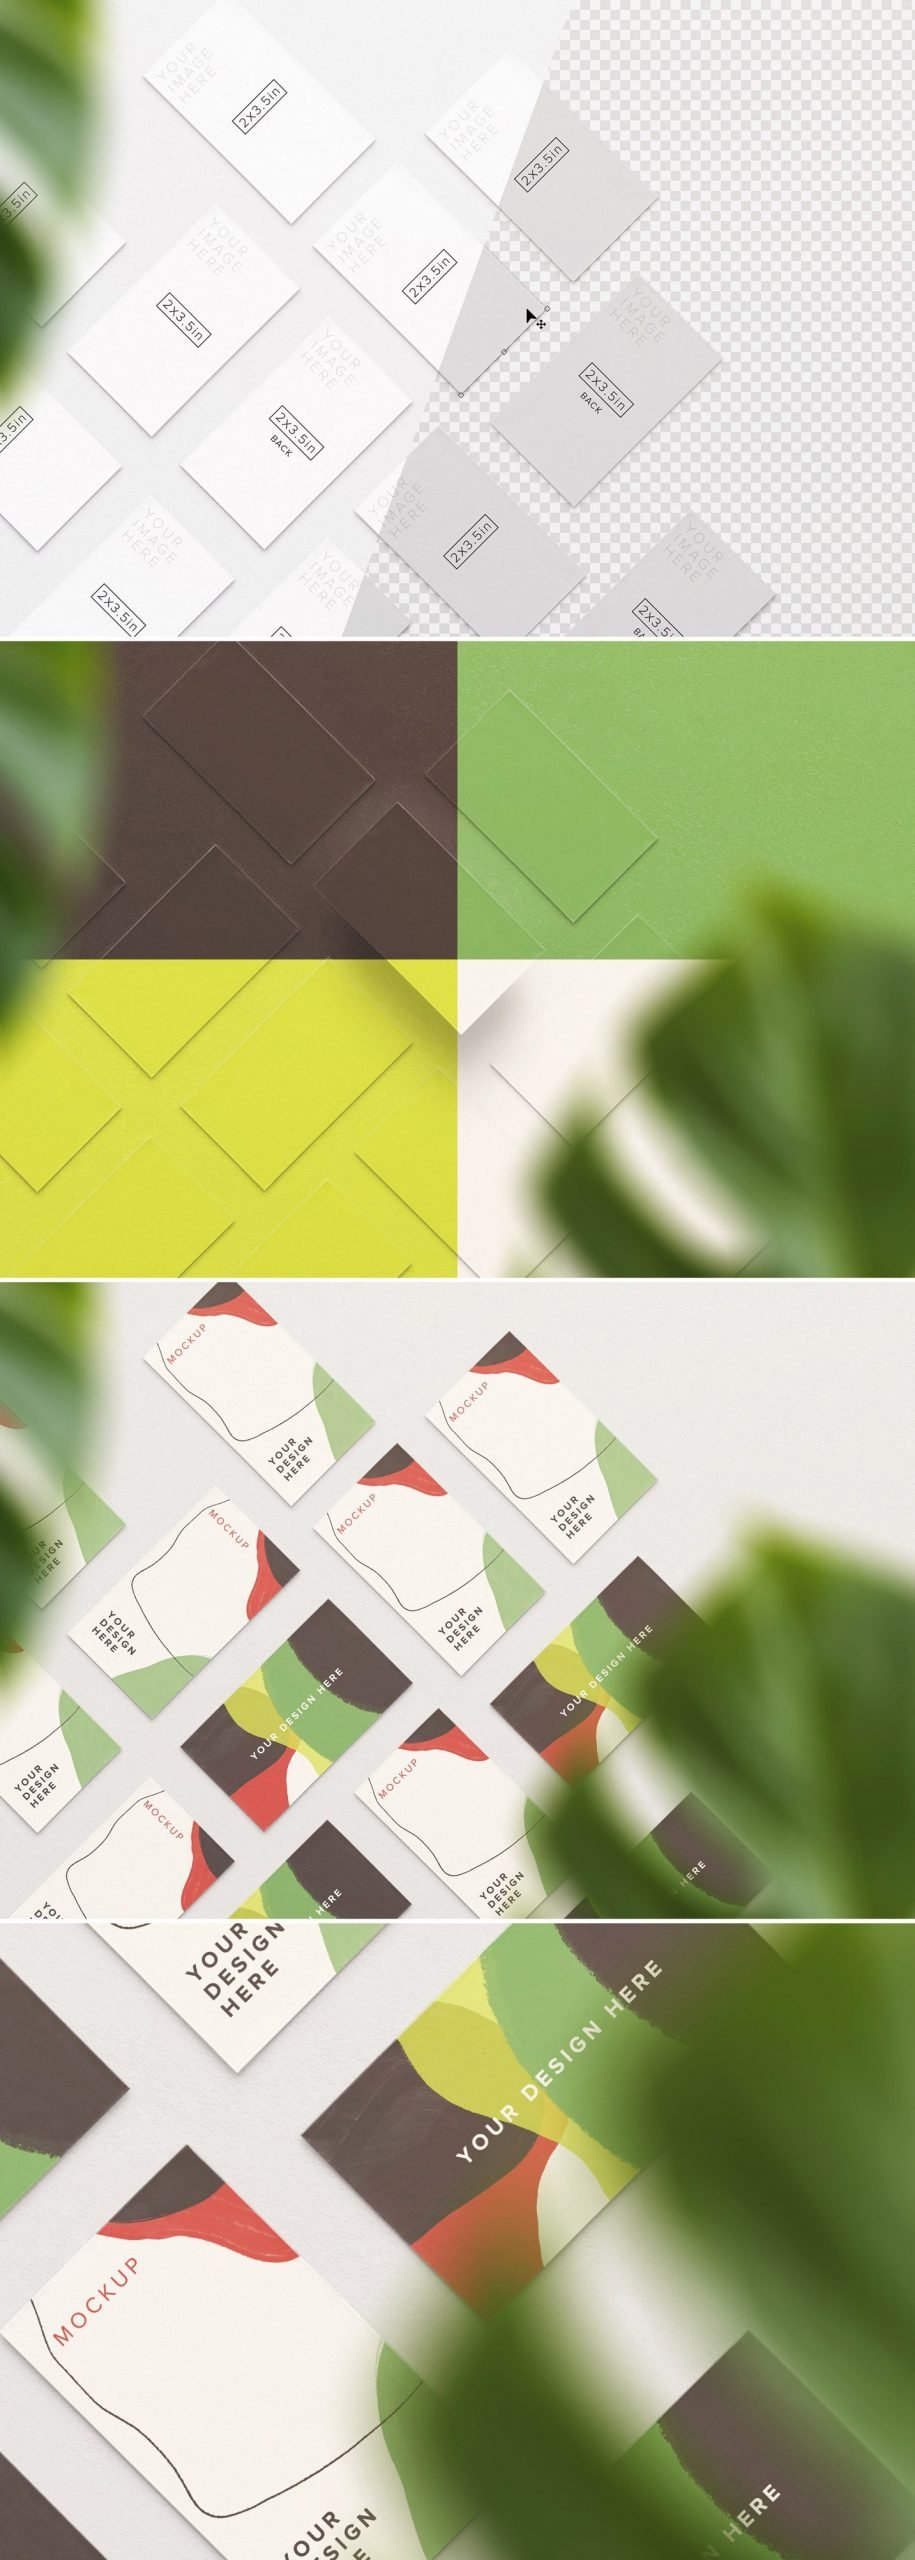 business cards mockup layout w plant preview1 1 scaled